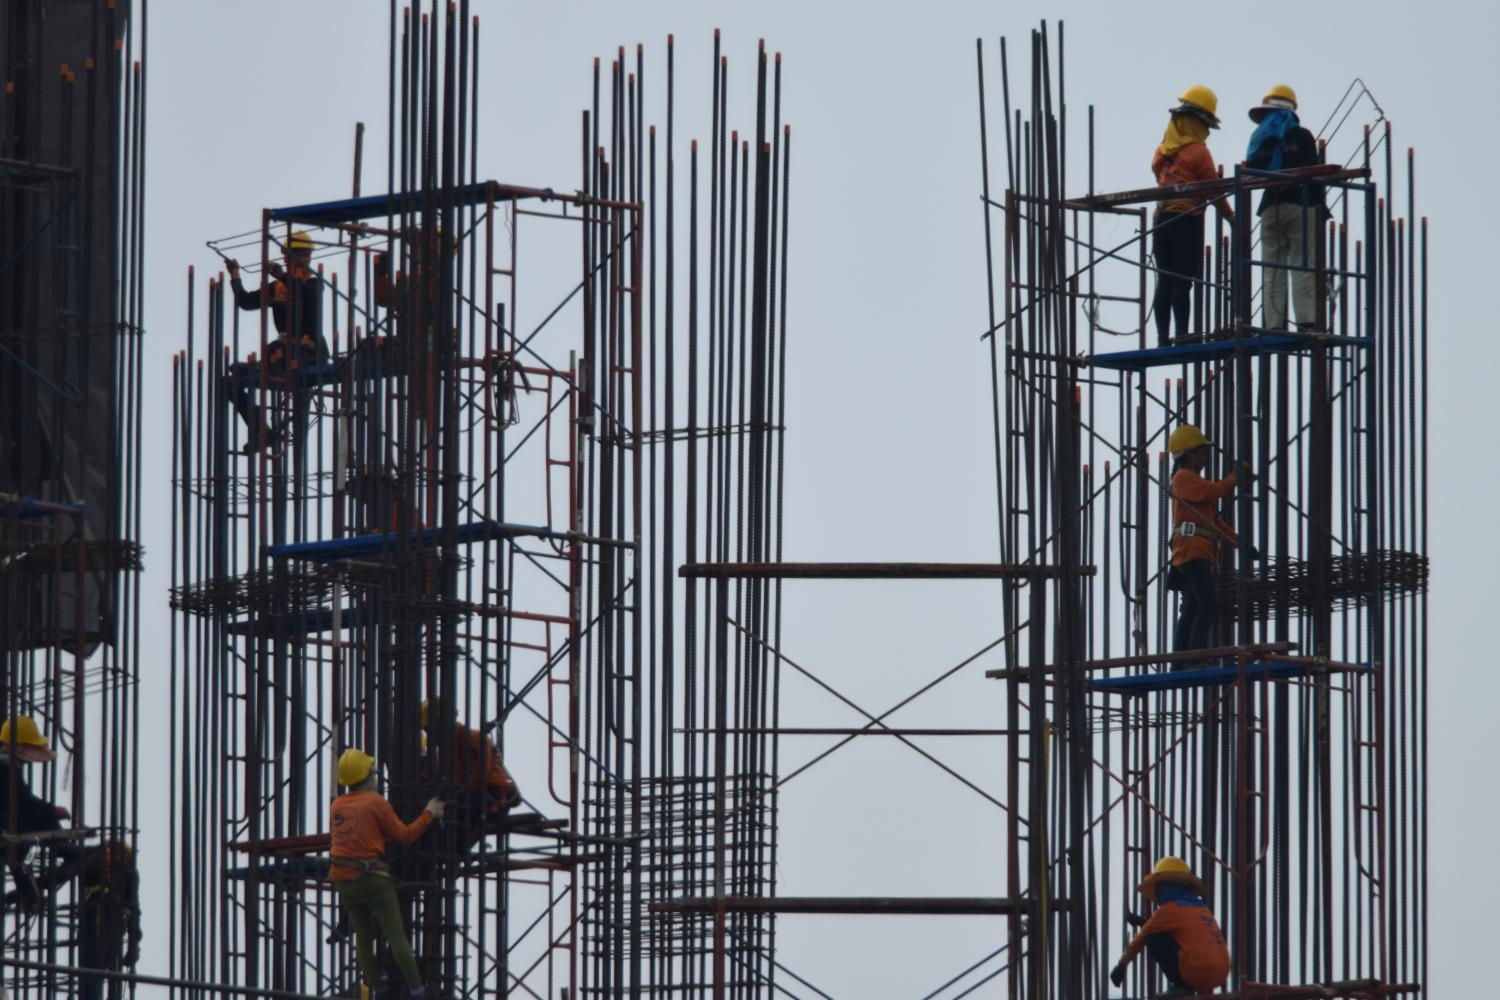 Workers assemble steel rods at a construction site in Bangkok.Panumas Sanguanwong